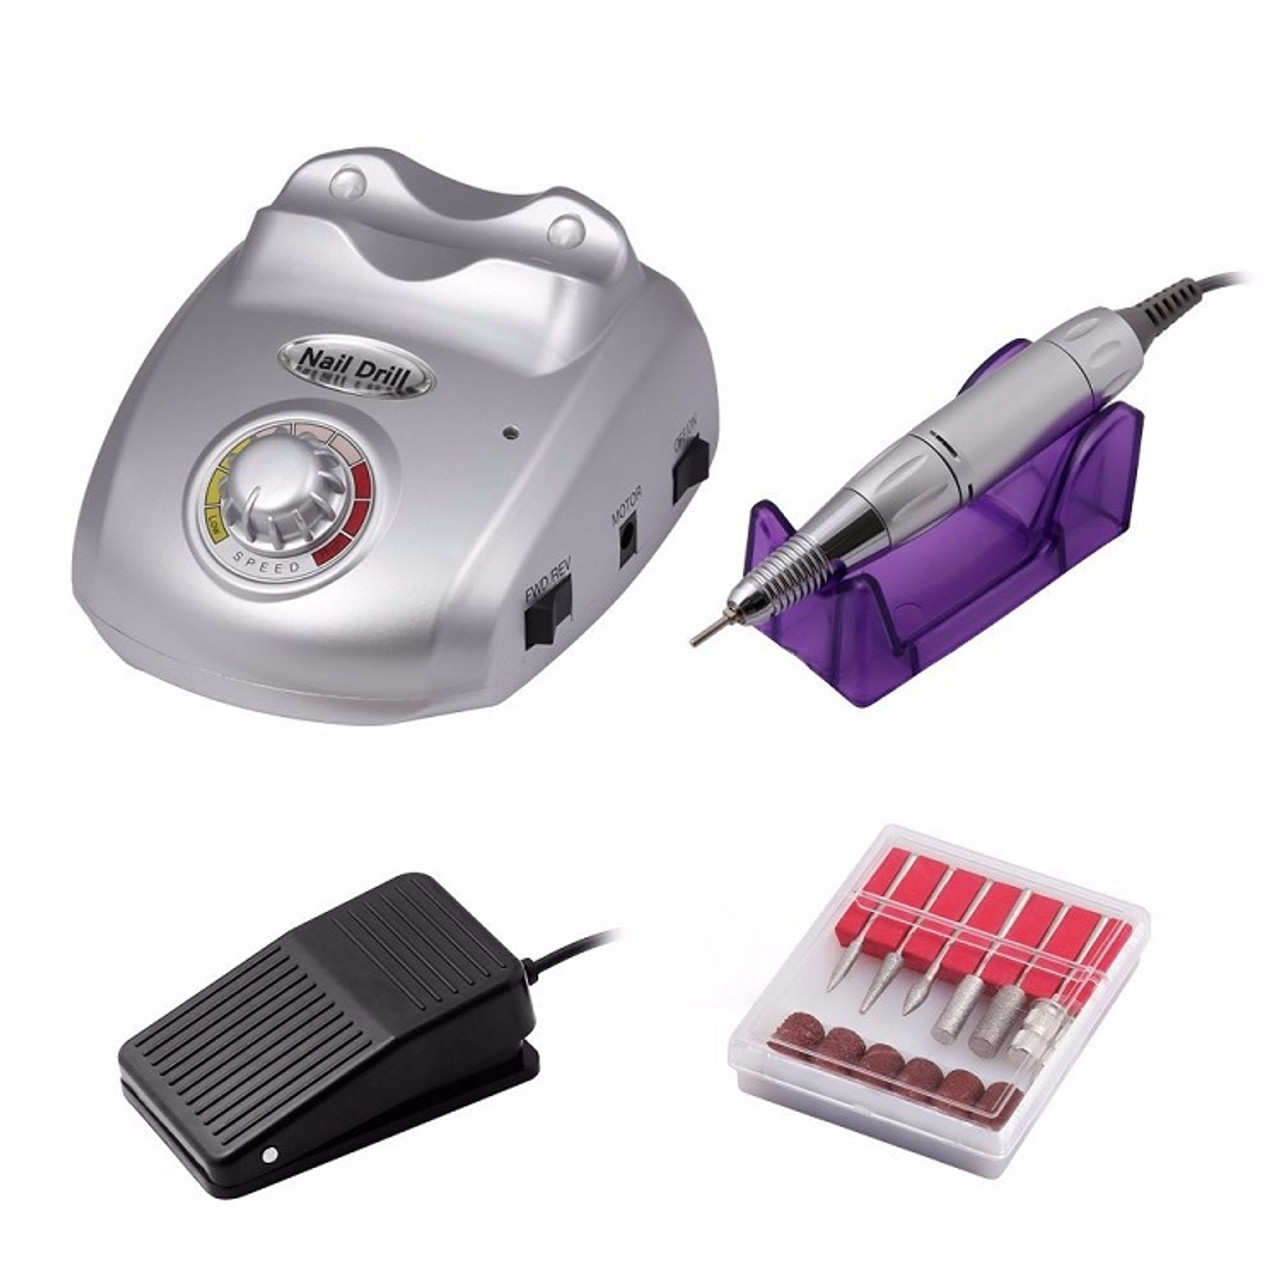 Professional Electric Nail Art Drill Machine 35,000 RPM - Fashion Mouse